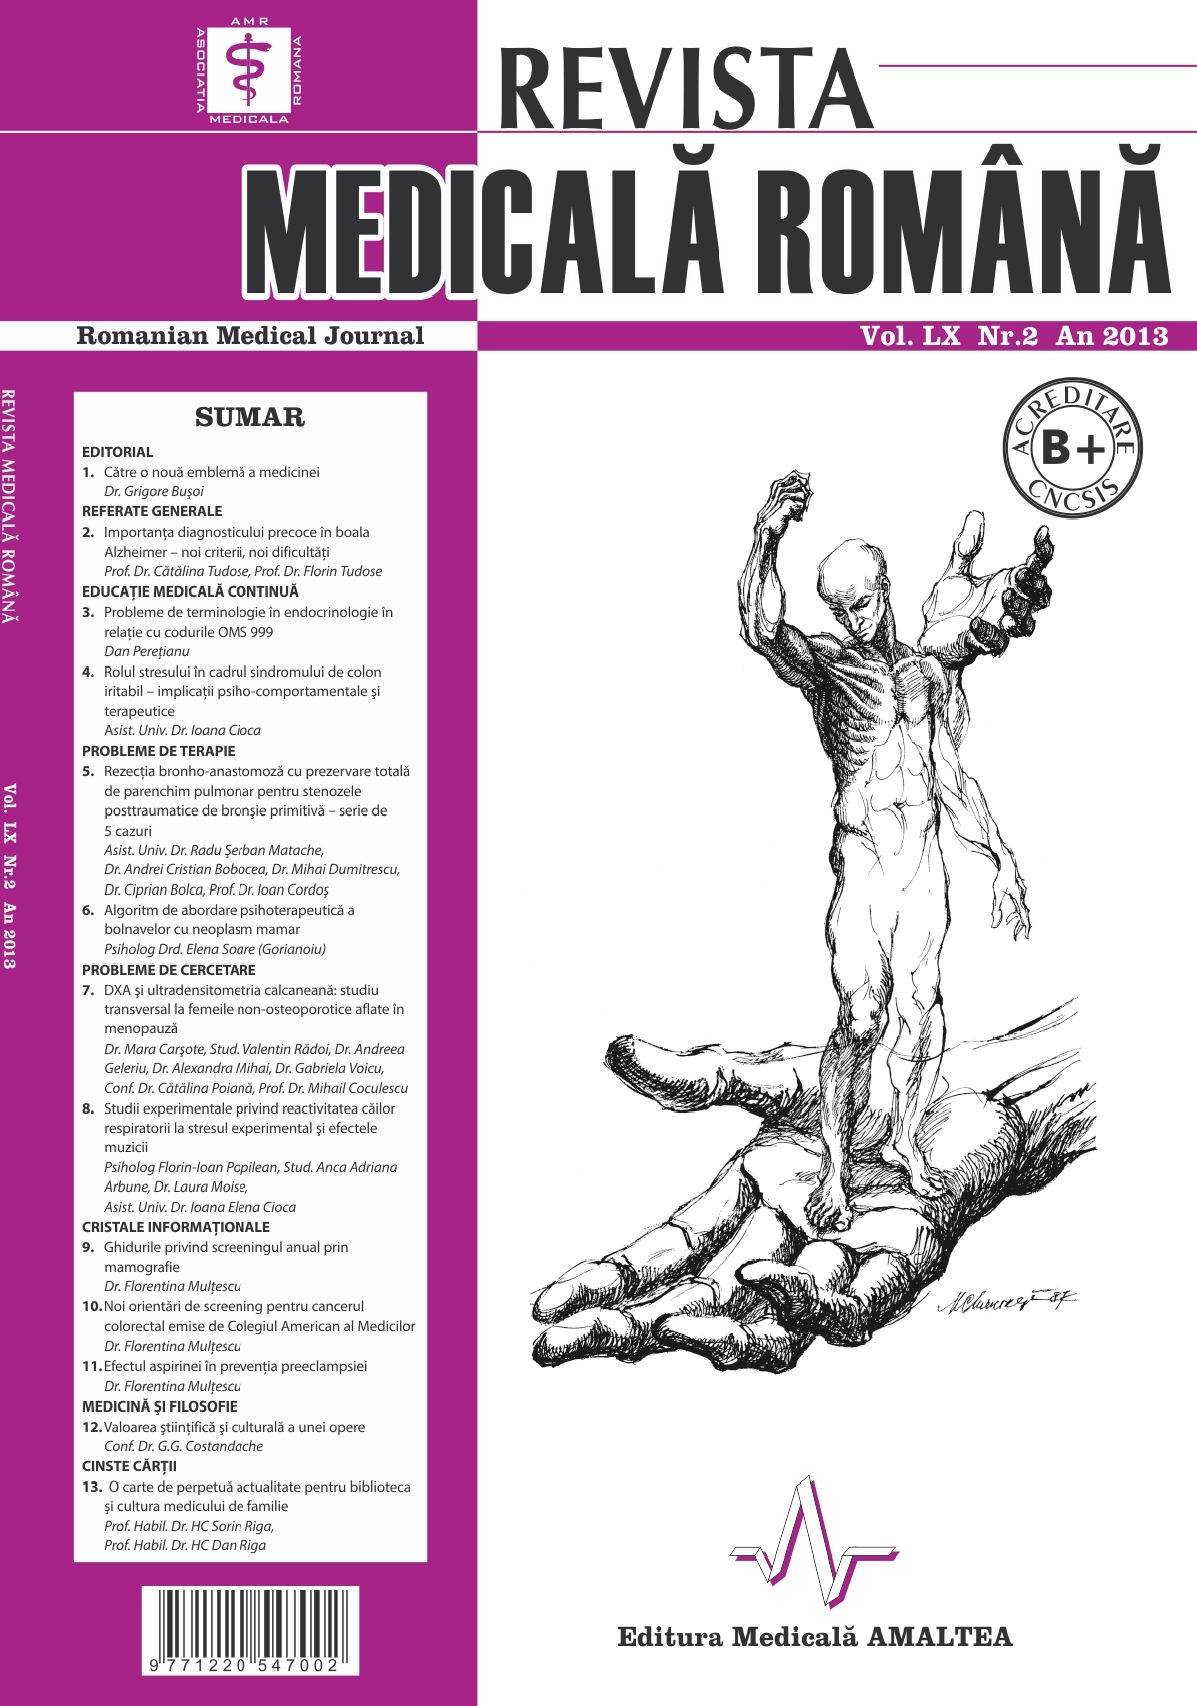 REVISTA MEDICALA ROMANA - Romanian Medical Journal, Vol. LX, No. 2, Year 2013